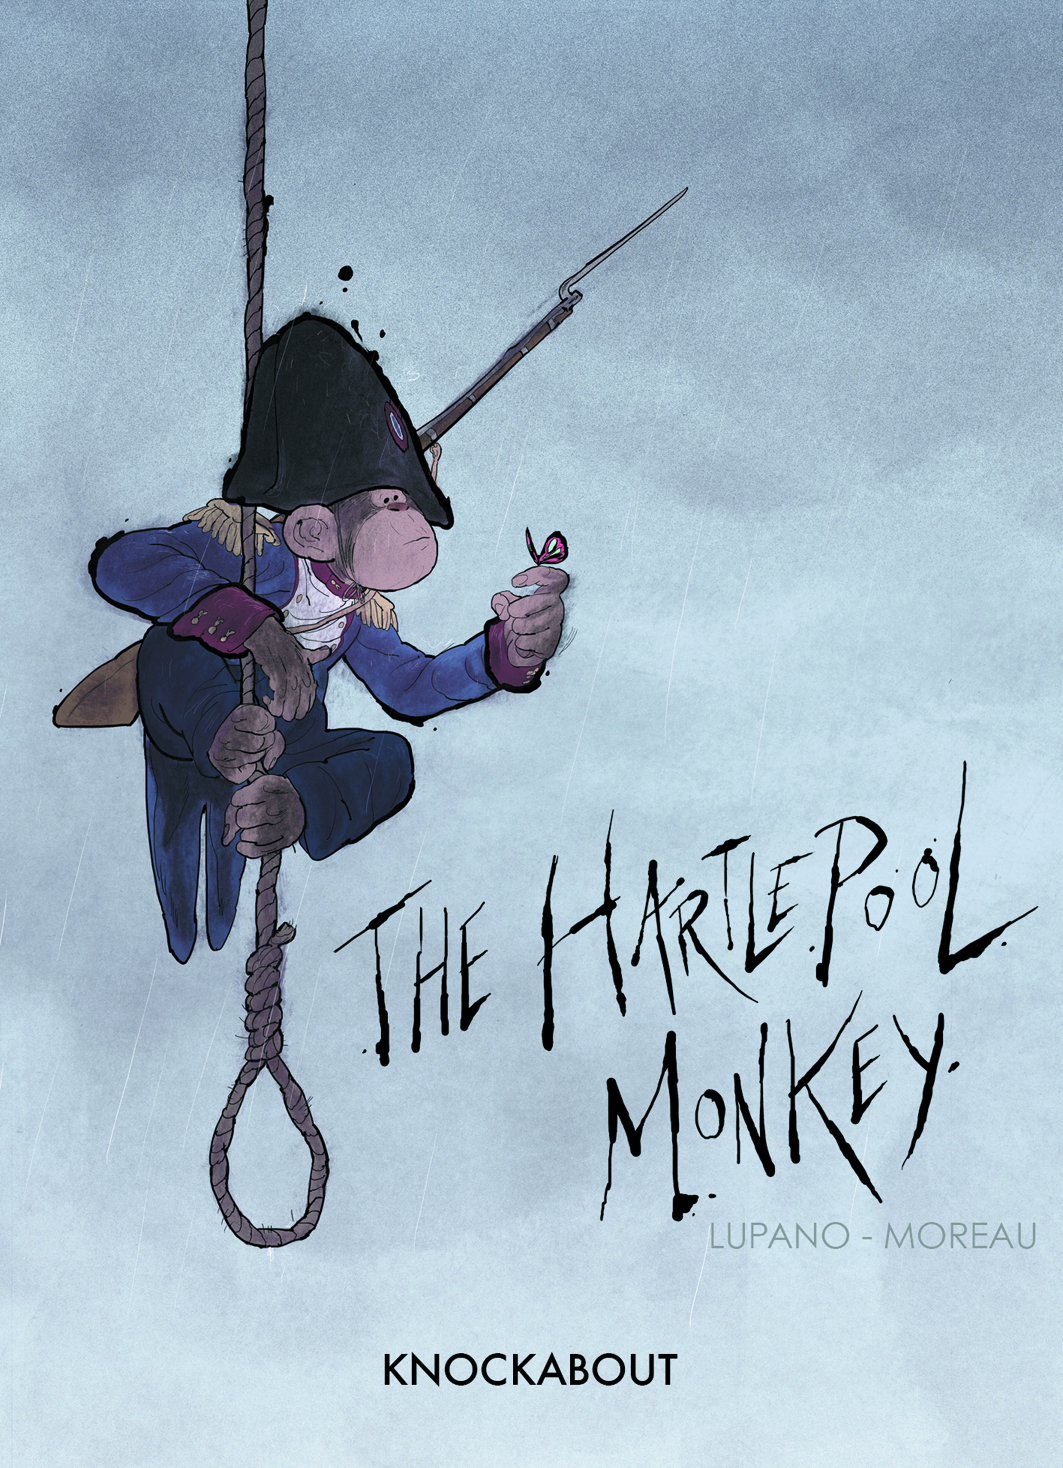 HARTLEPOOL MONKEY HC